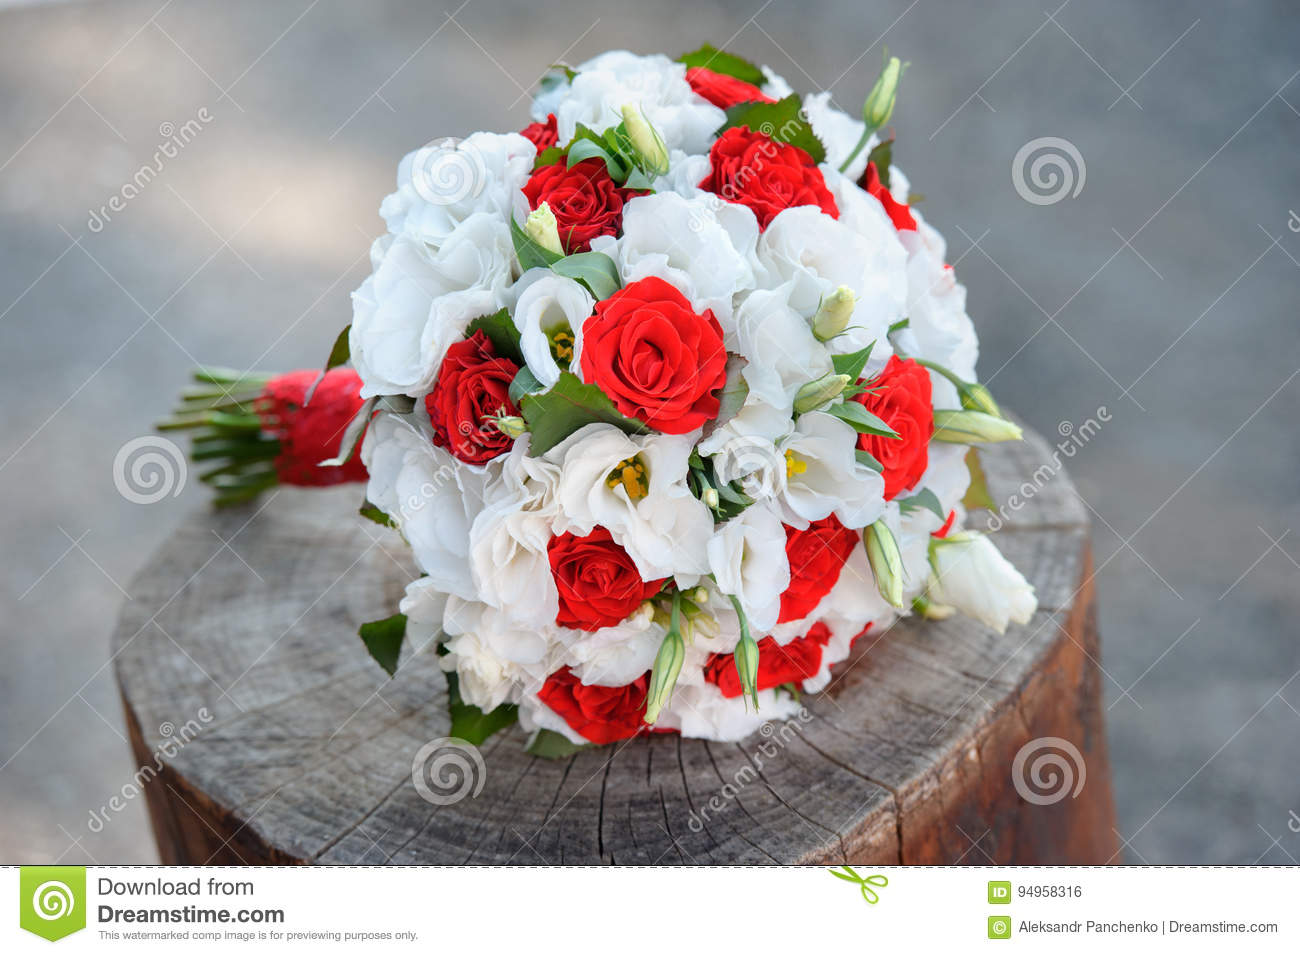 Delicate Wedding Bouquet In White And Red Colors Flowers Stock Photo ...